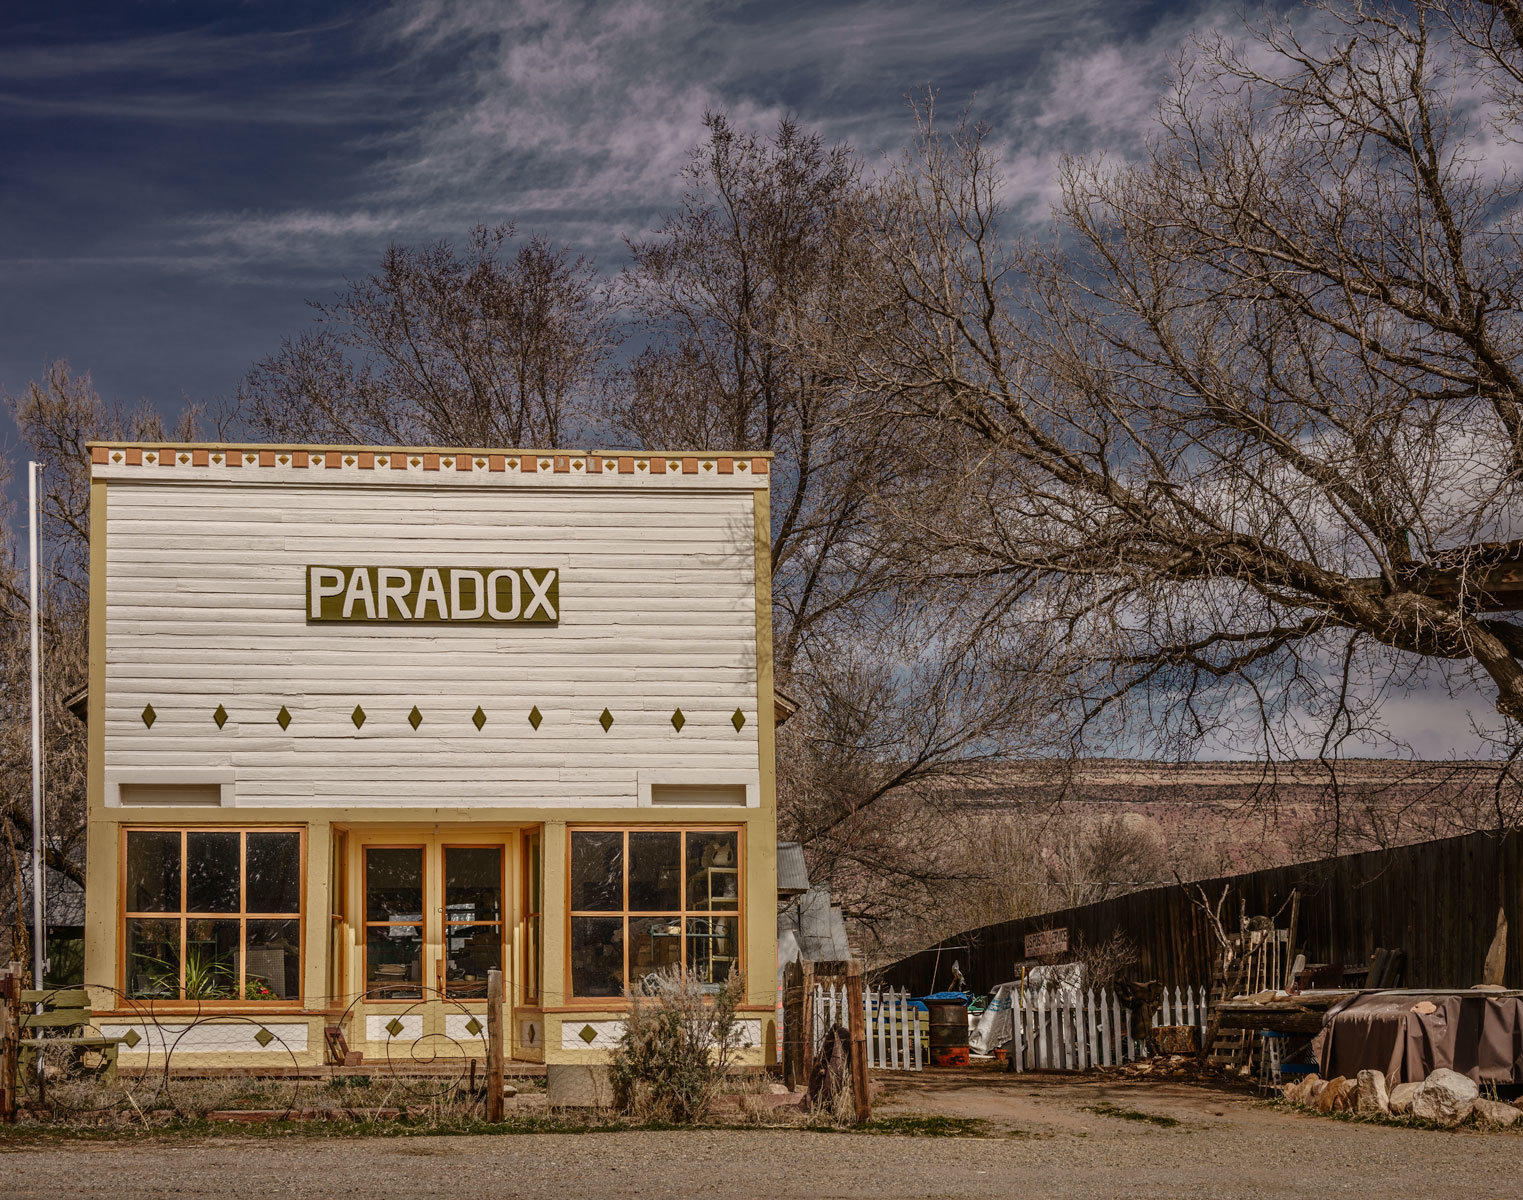 Paradox, Colorado